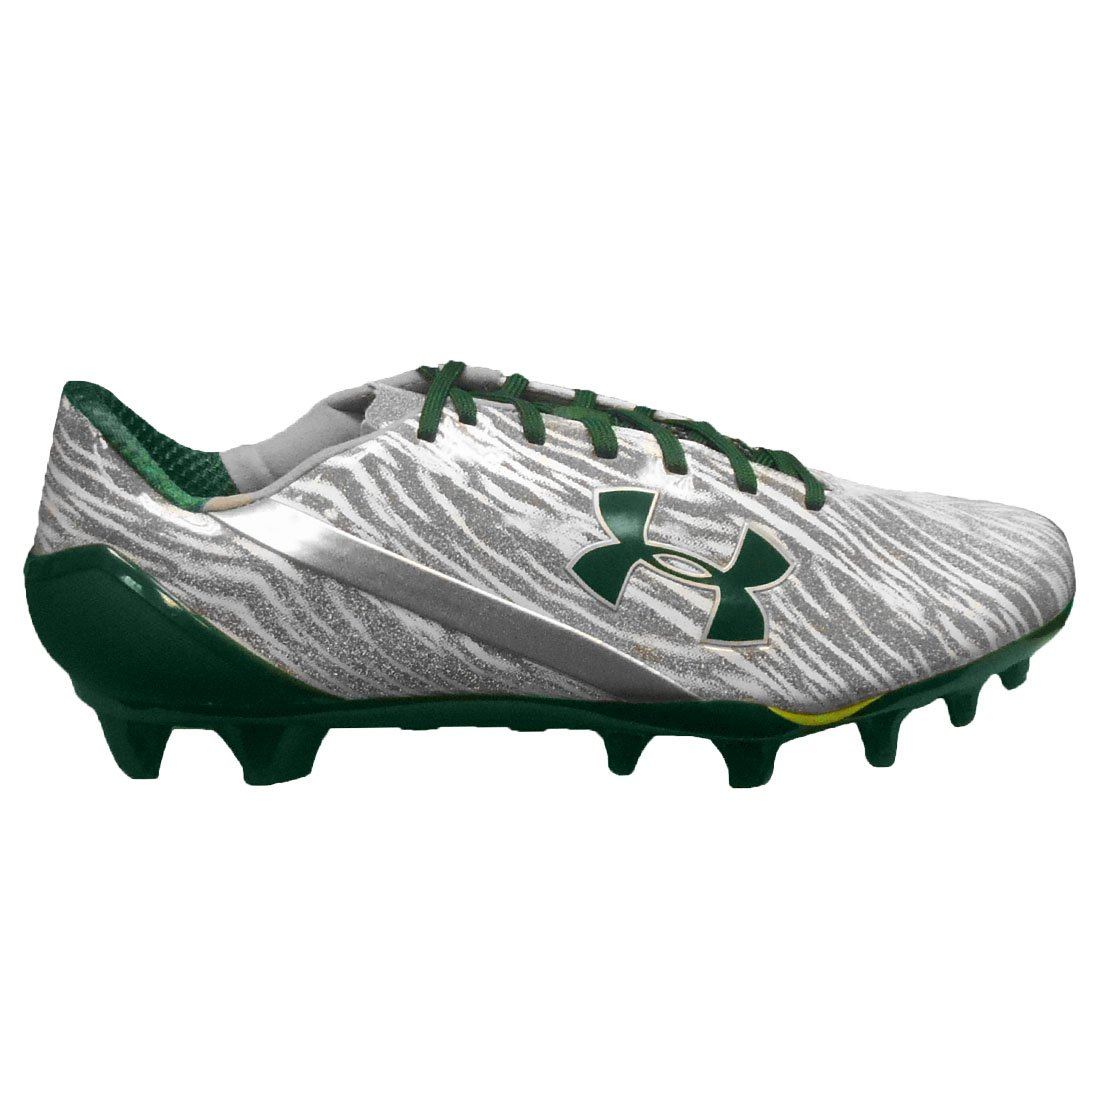 1246b0fbe Under Armour Men's Spotlight Mc Football Cleats Metallic Silver/White/Green  15 D(M) US: Buy Online at Low Prices in India - Amazon.in